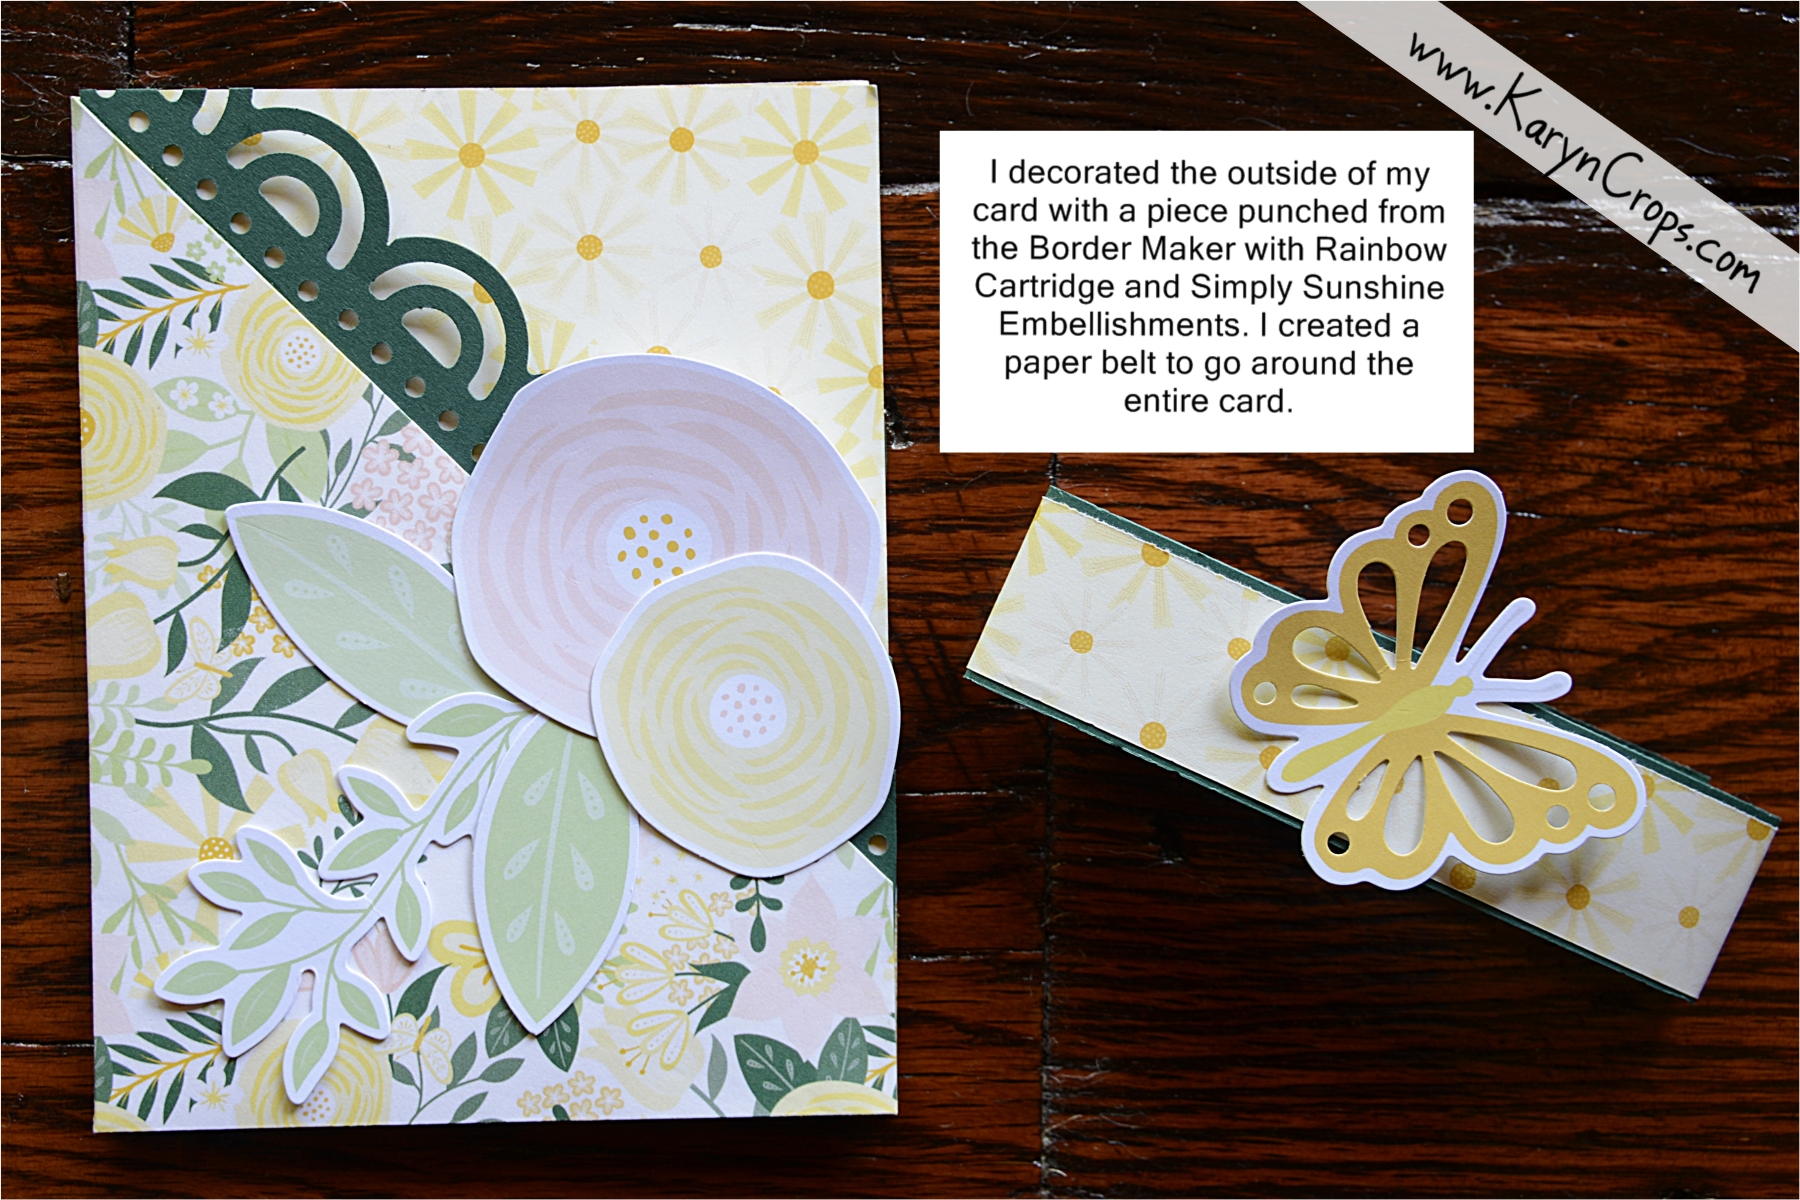 KarynCropsCLSFeaturedFridayCardAndTags - Page 003